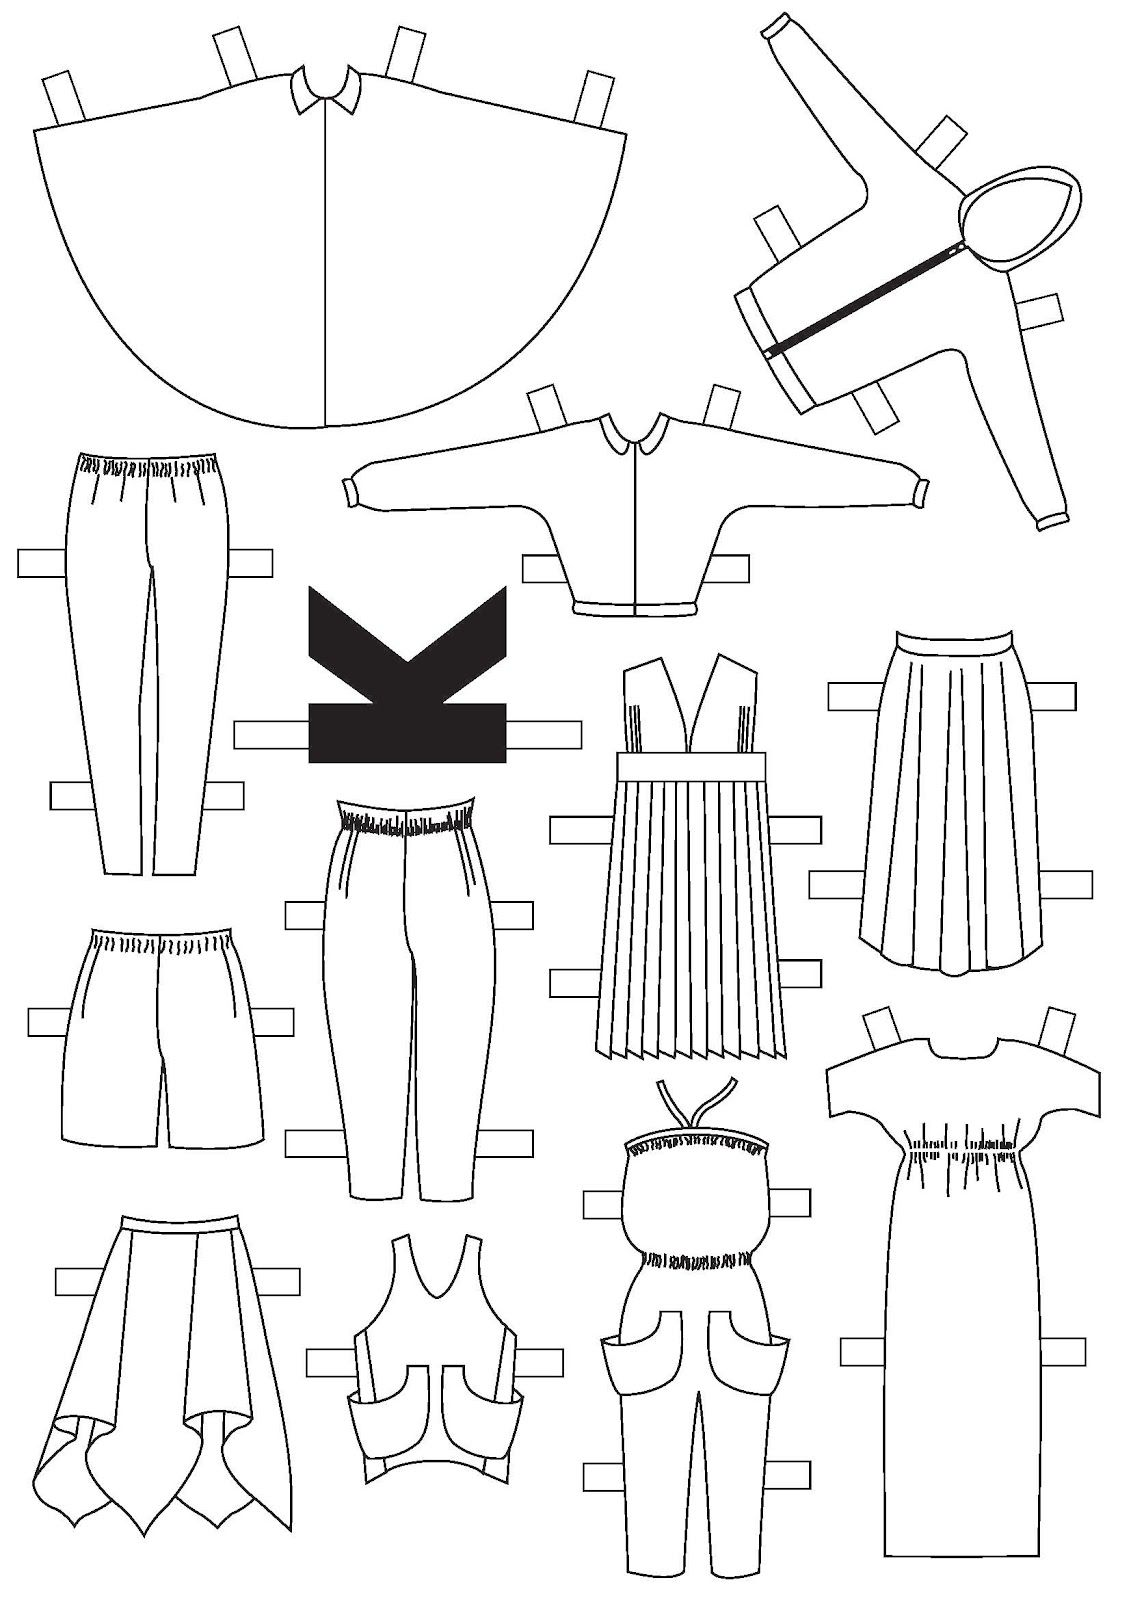 graphic relating to Paper Doll Clothing Printable titled Do-it-yourself Couture Paper Doll Clothes Template SEWING AND FIBER